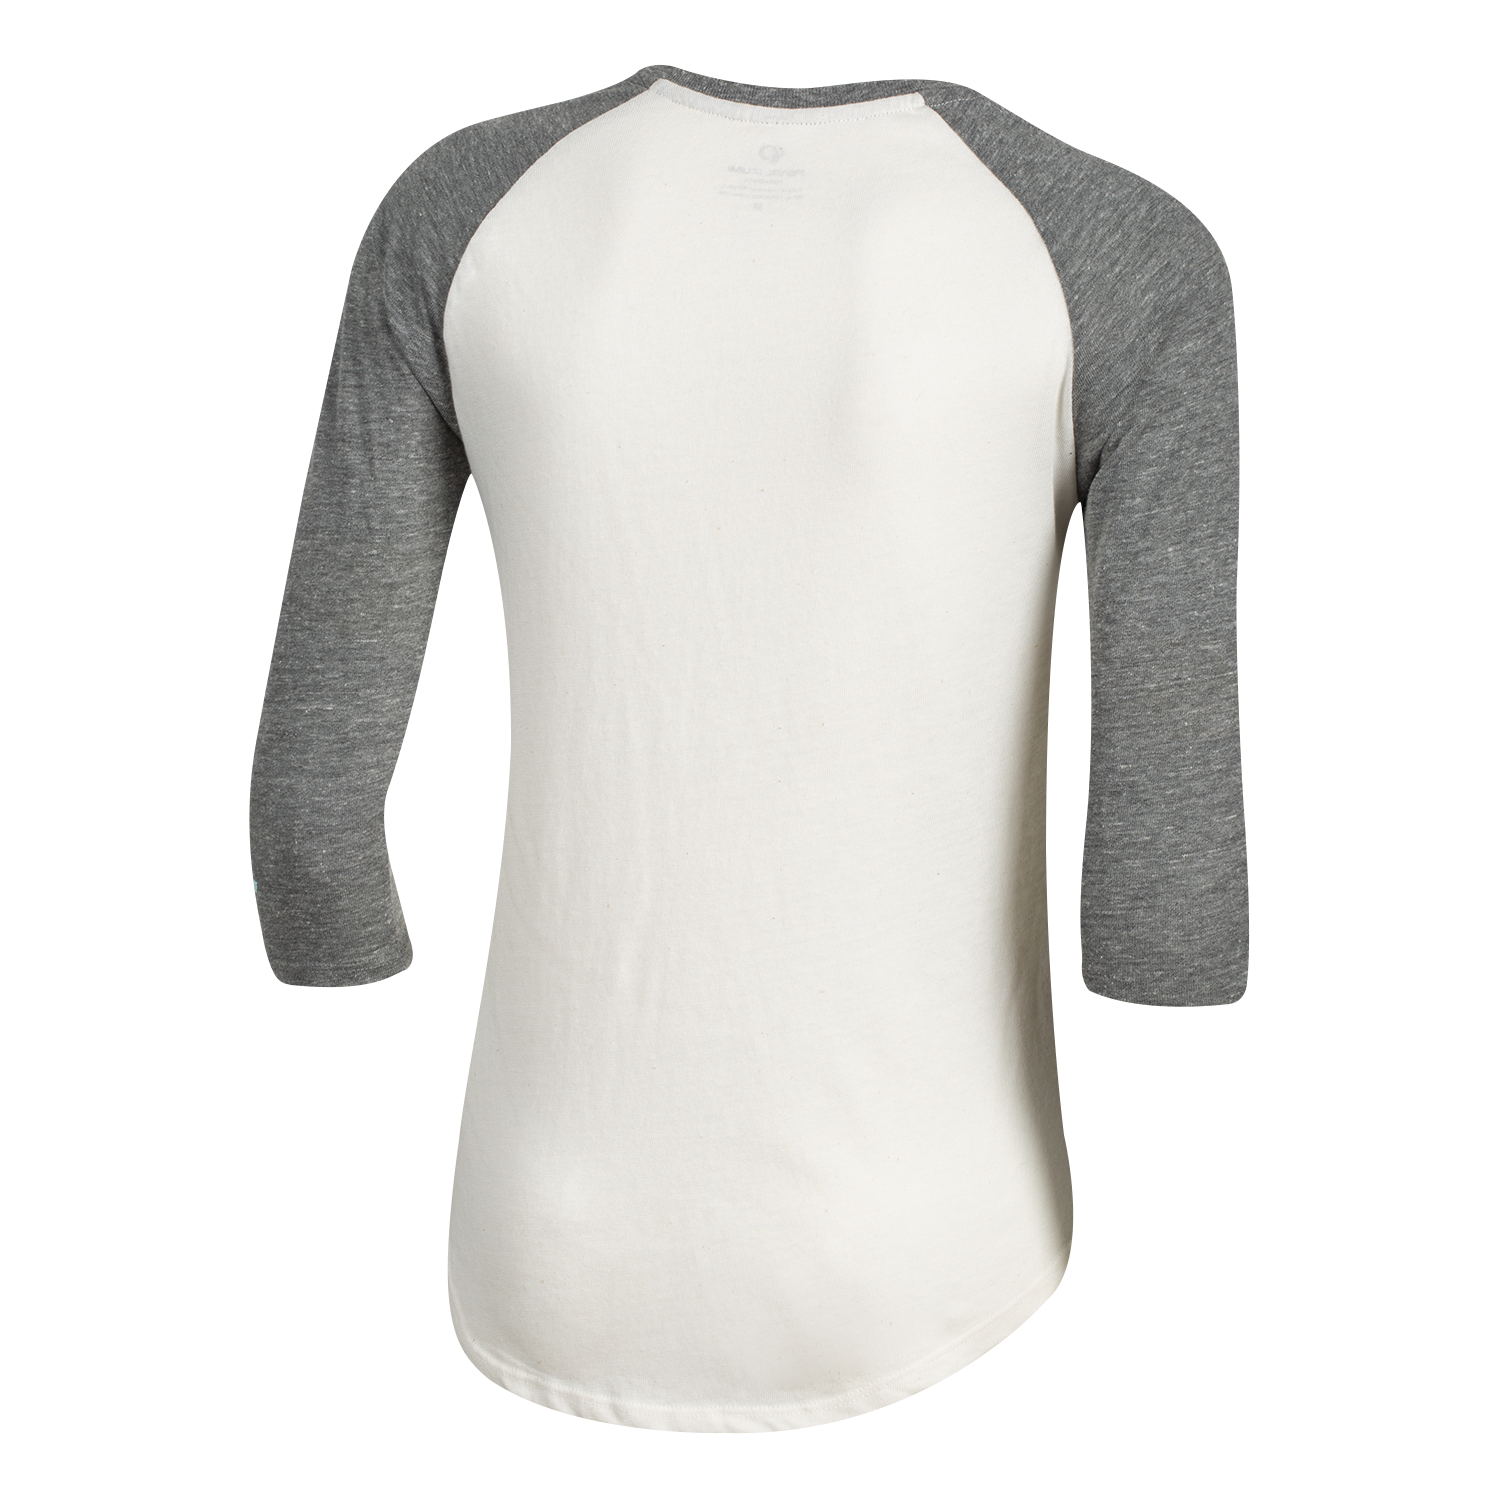 Women's Graphic Raglan2